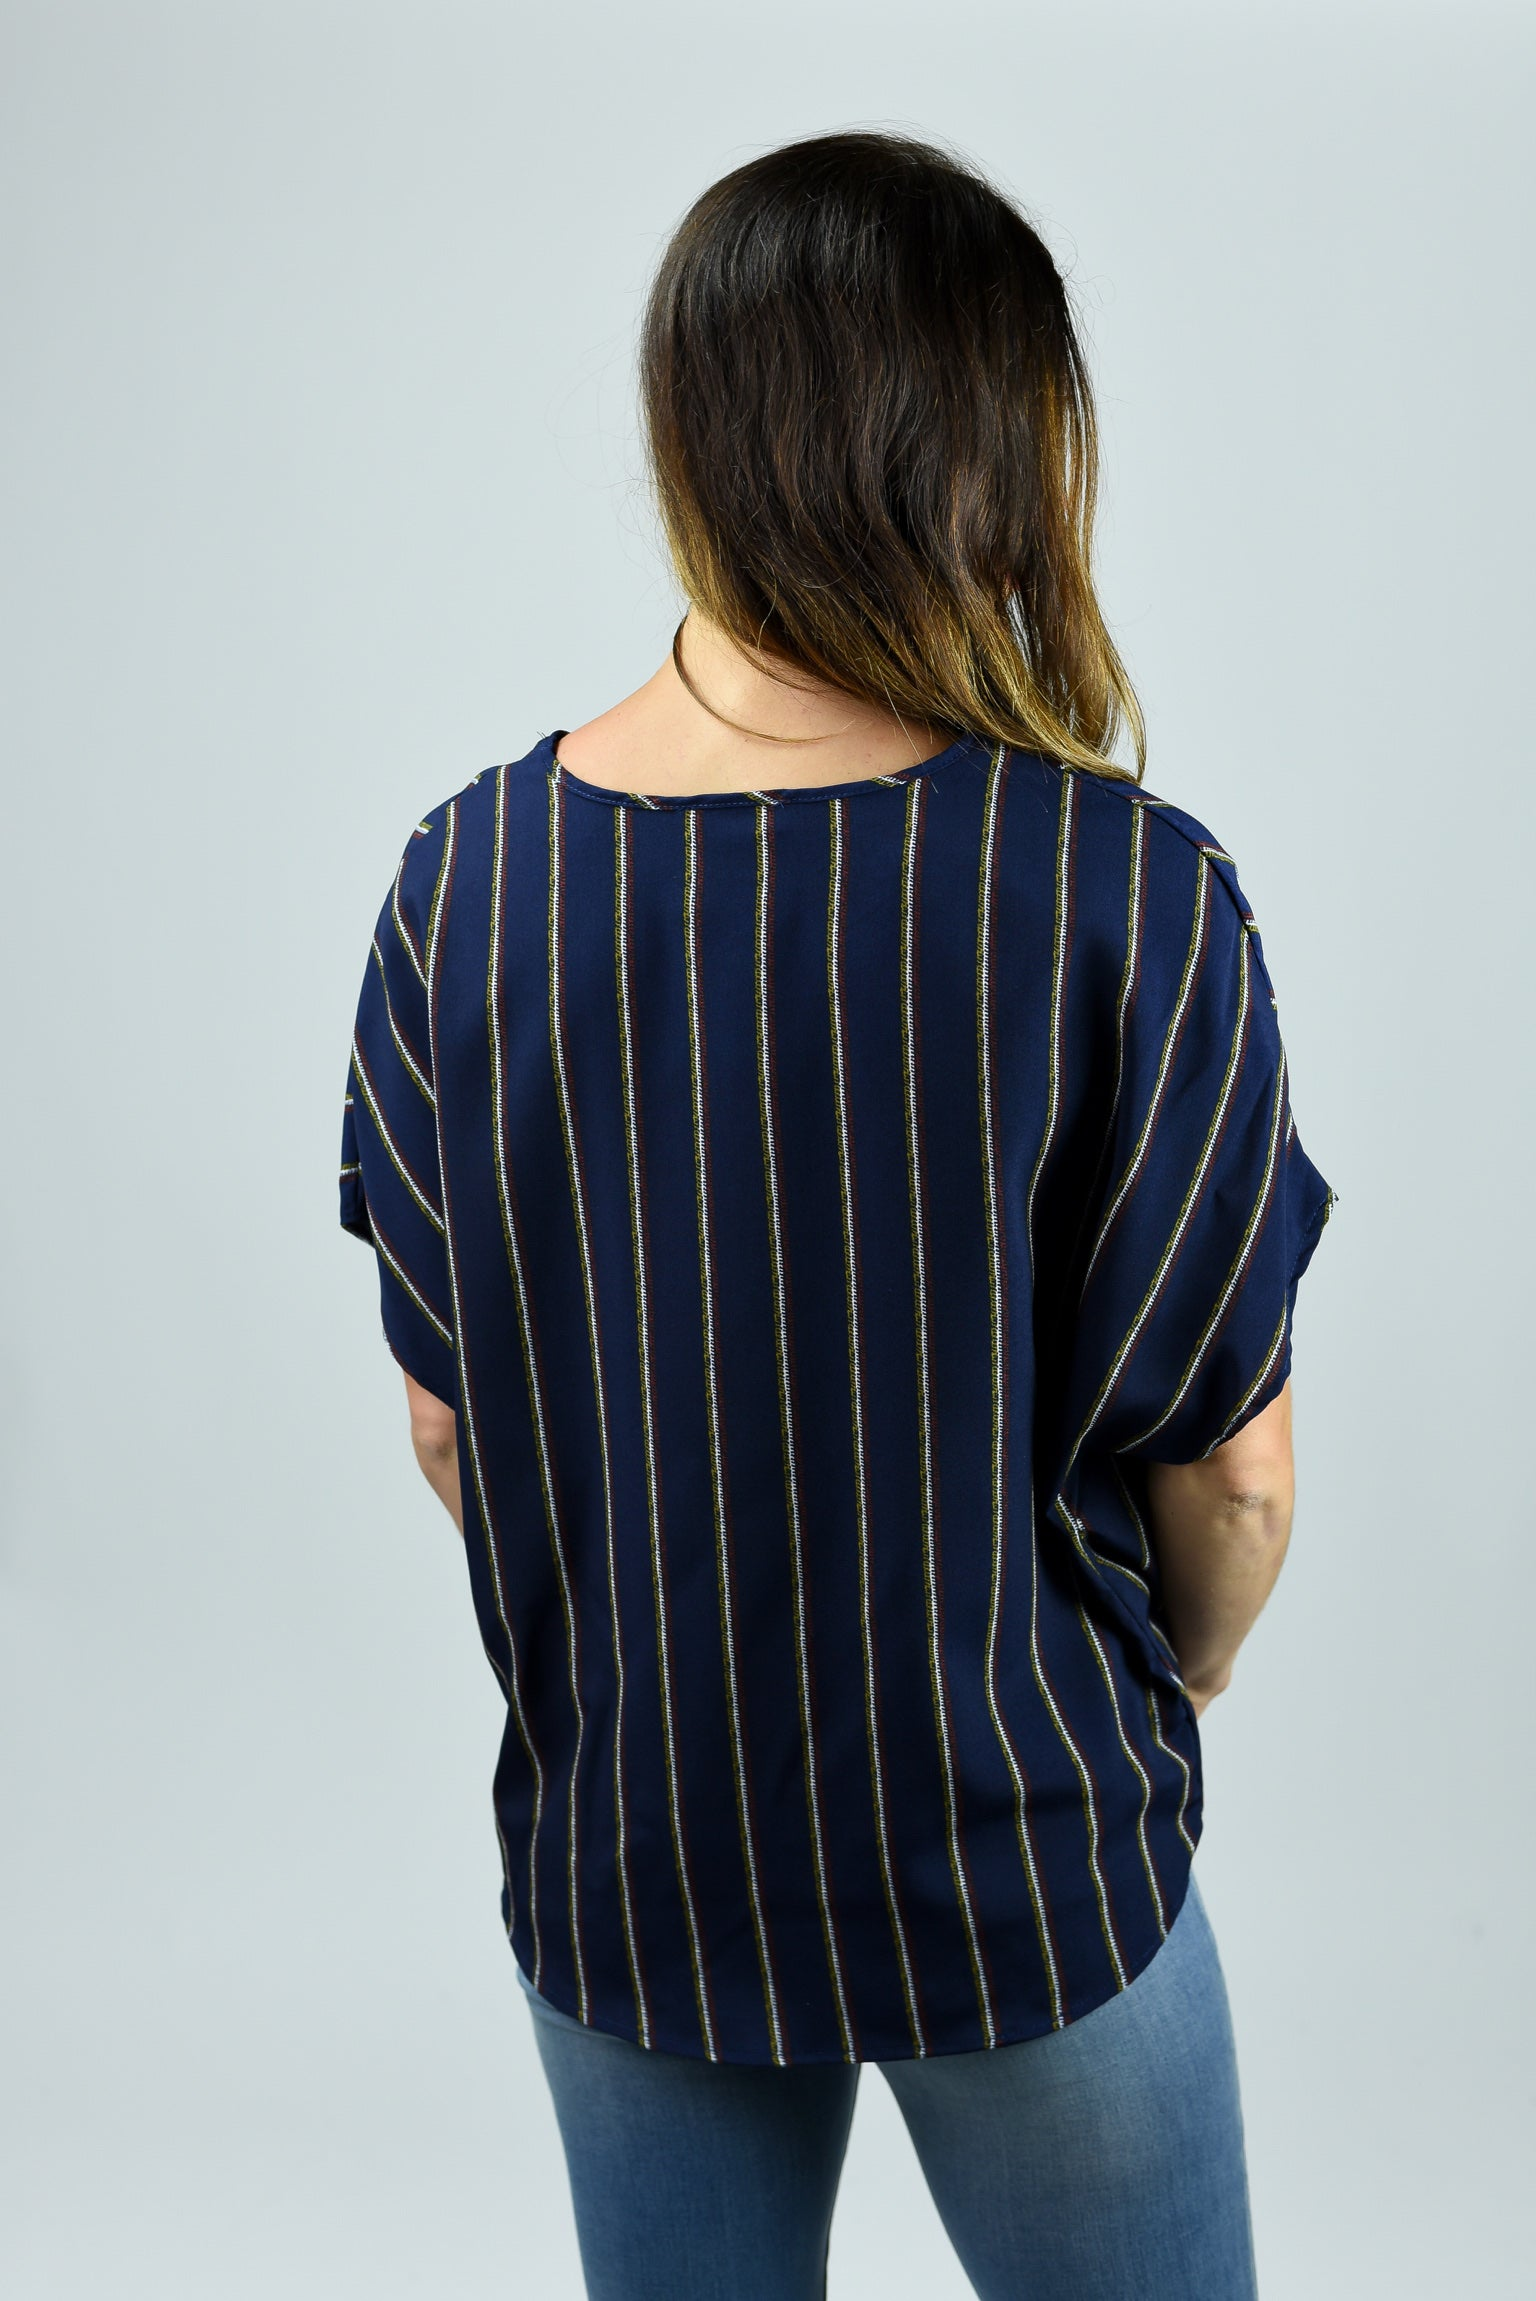 Next In Line Navy Striped Top